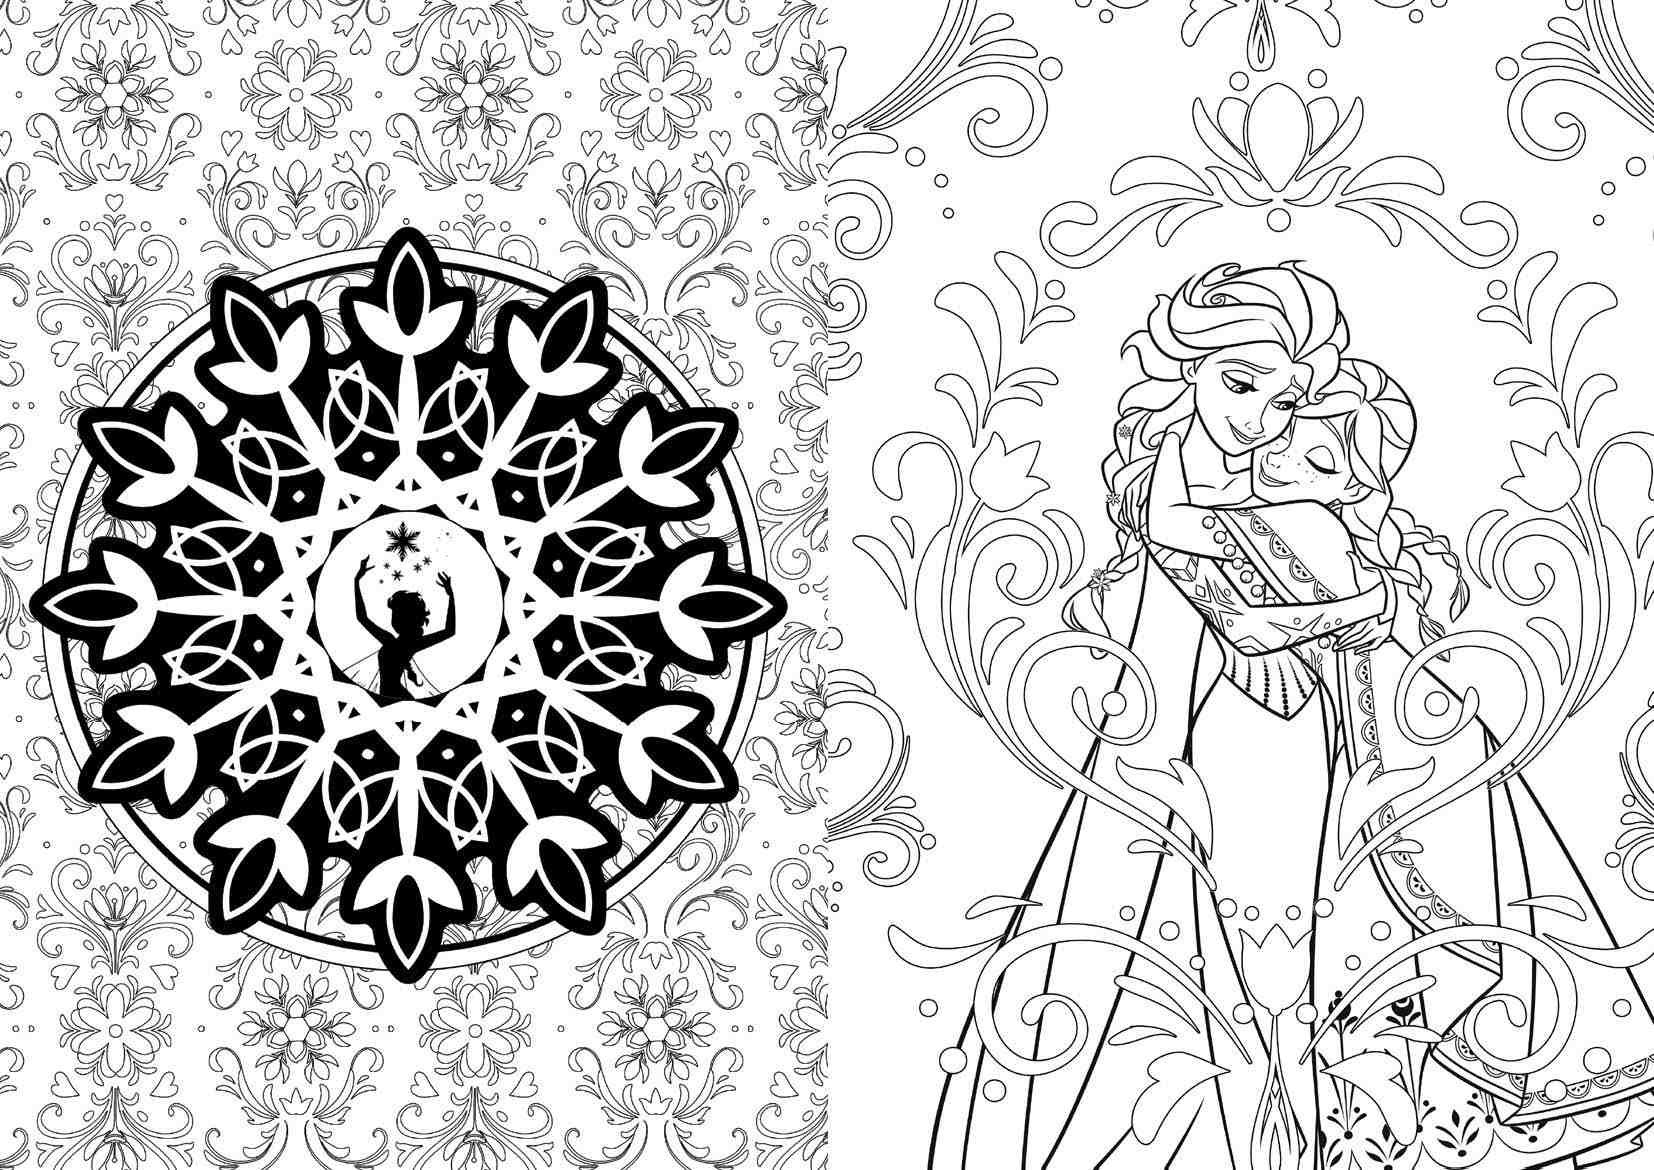 Art Of Coloring Disney Frozen 100 Images To Inspire Creativity And